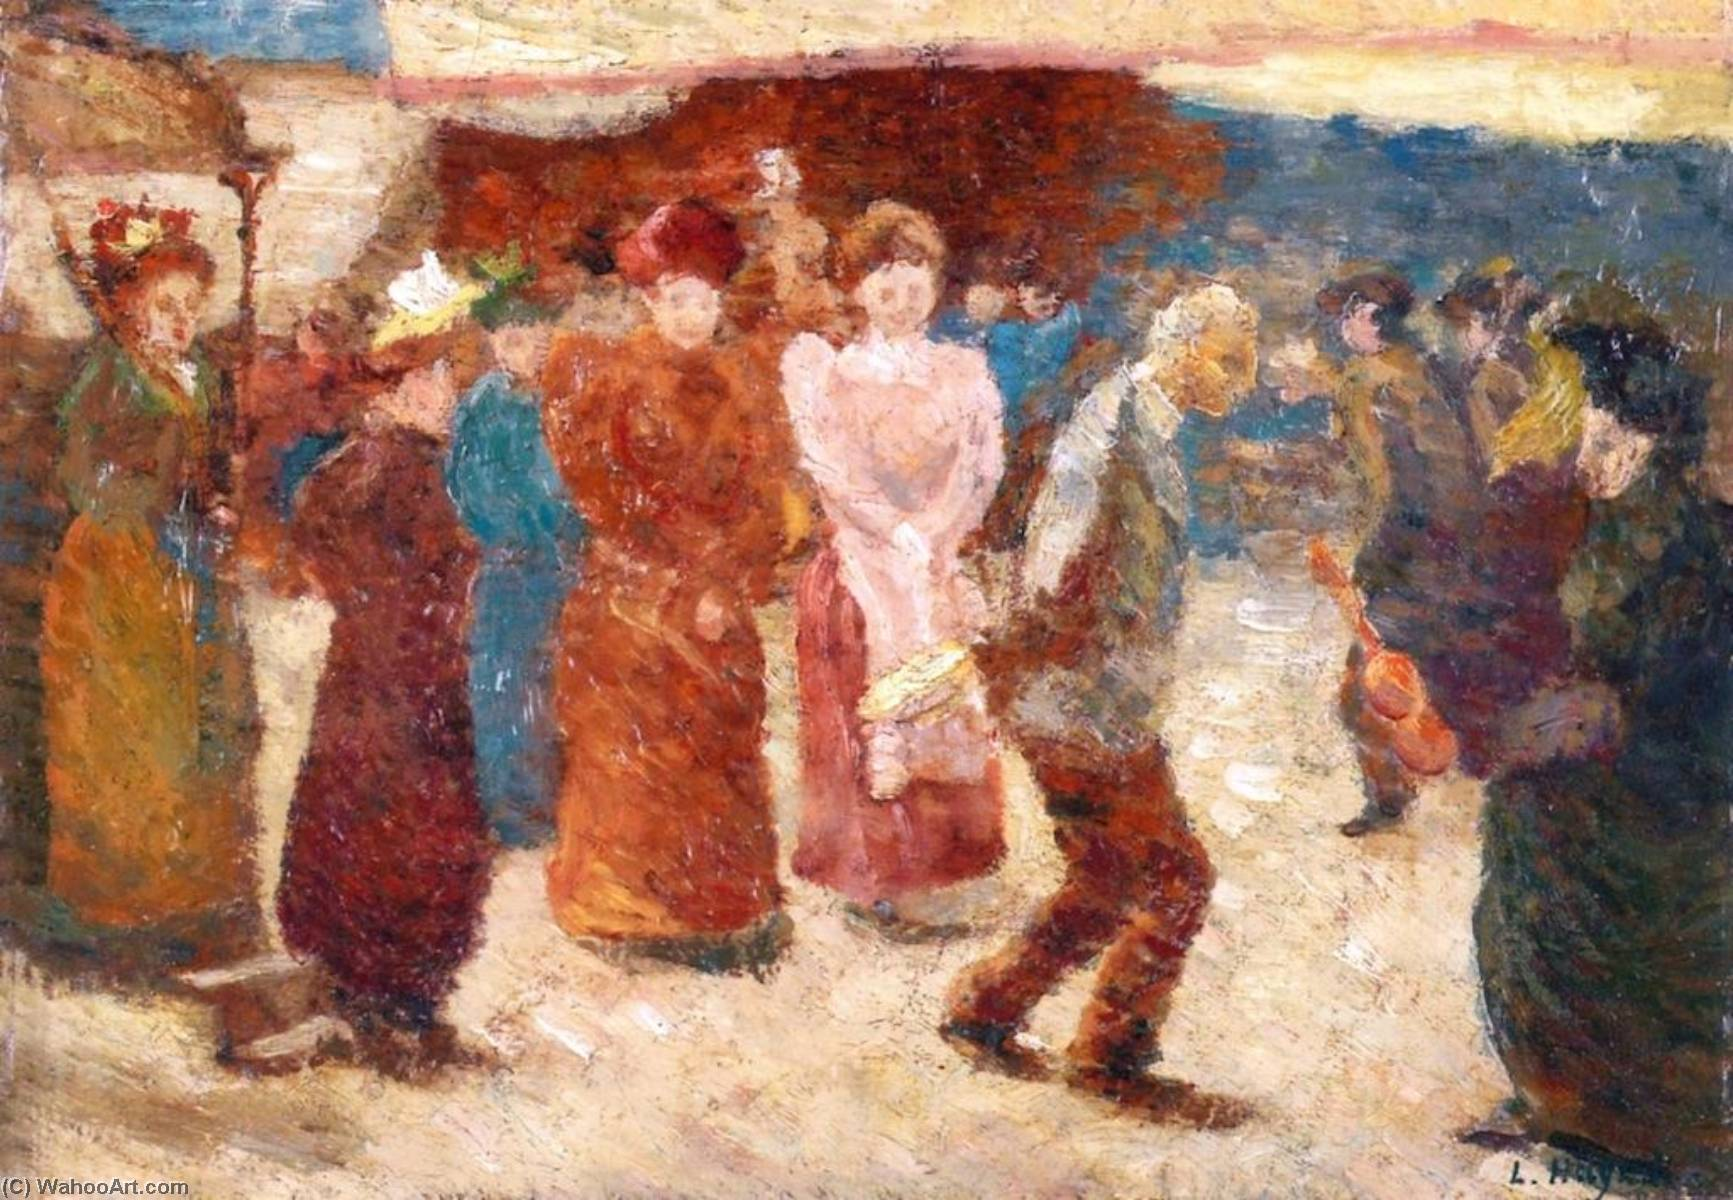 Order Museum Quality Copies | Figures on a Street by Louis Hayet (1864-1940) | WahooArt.com